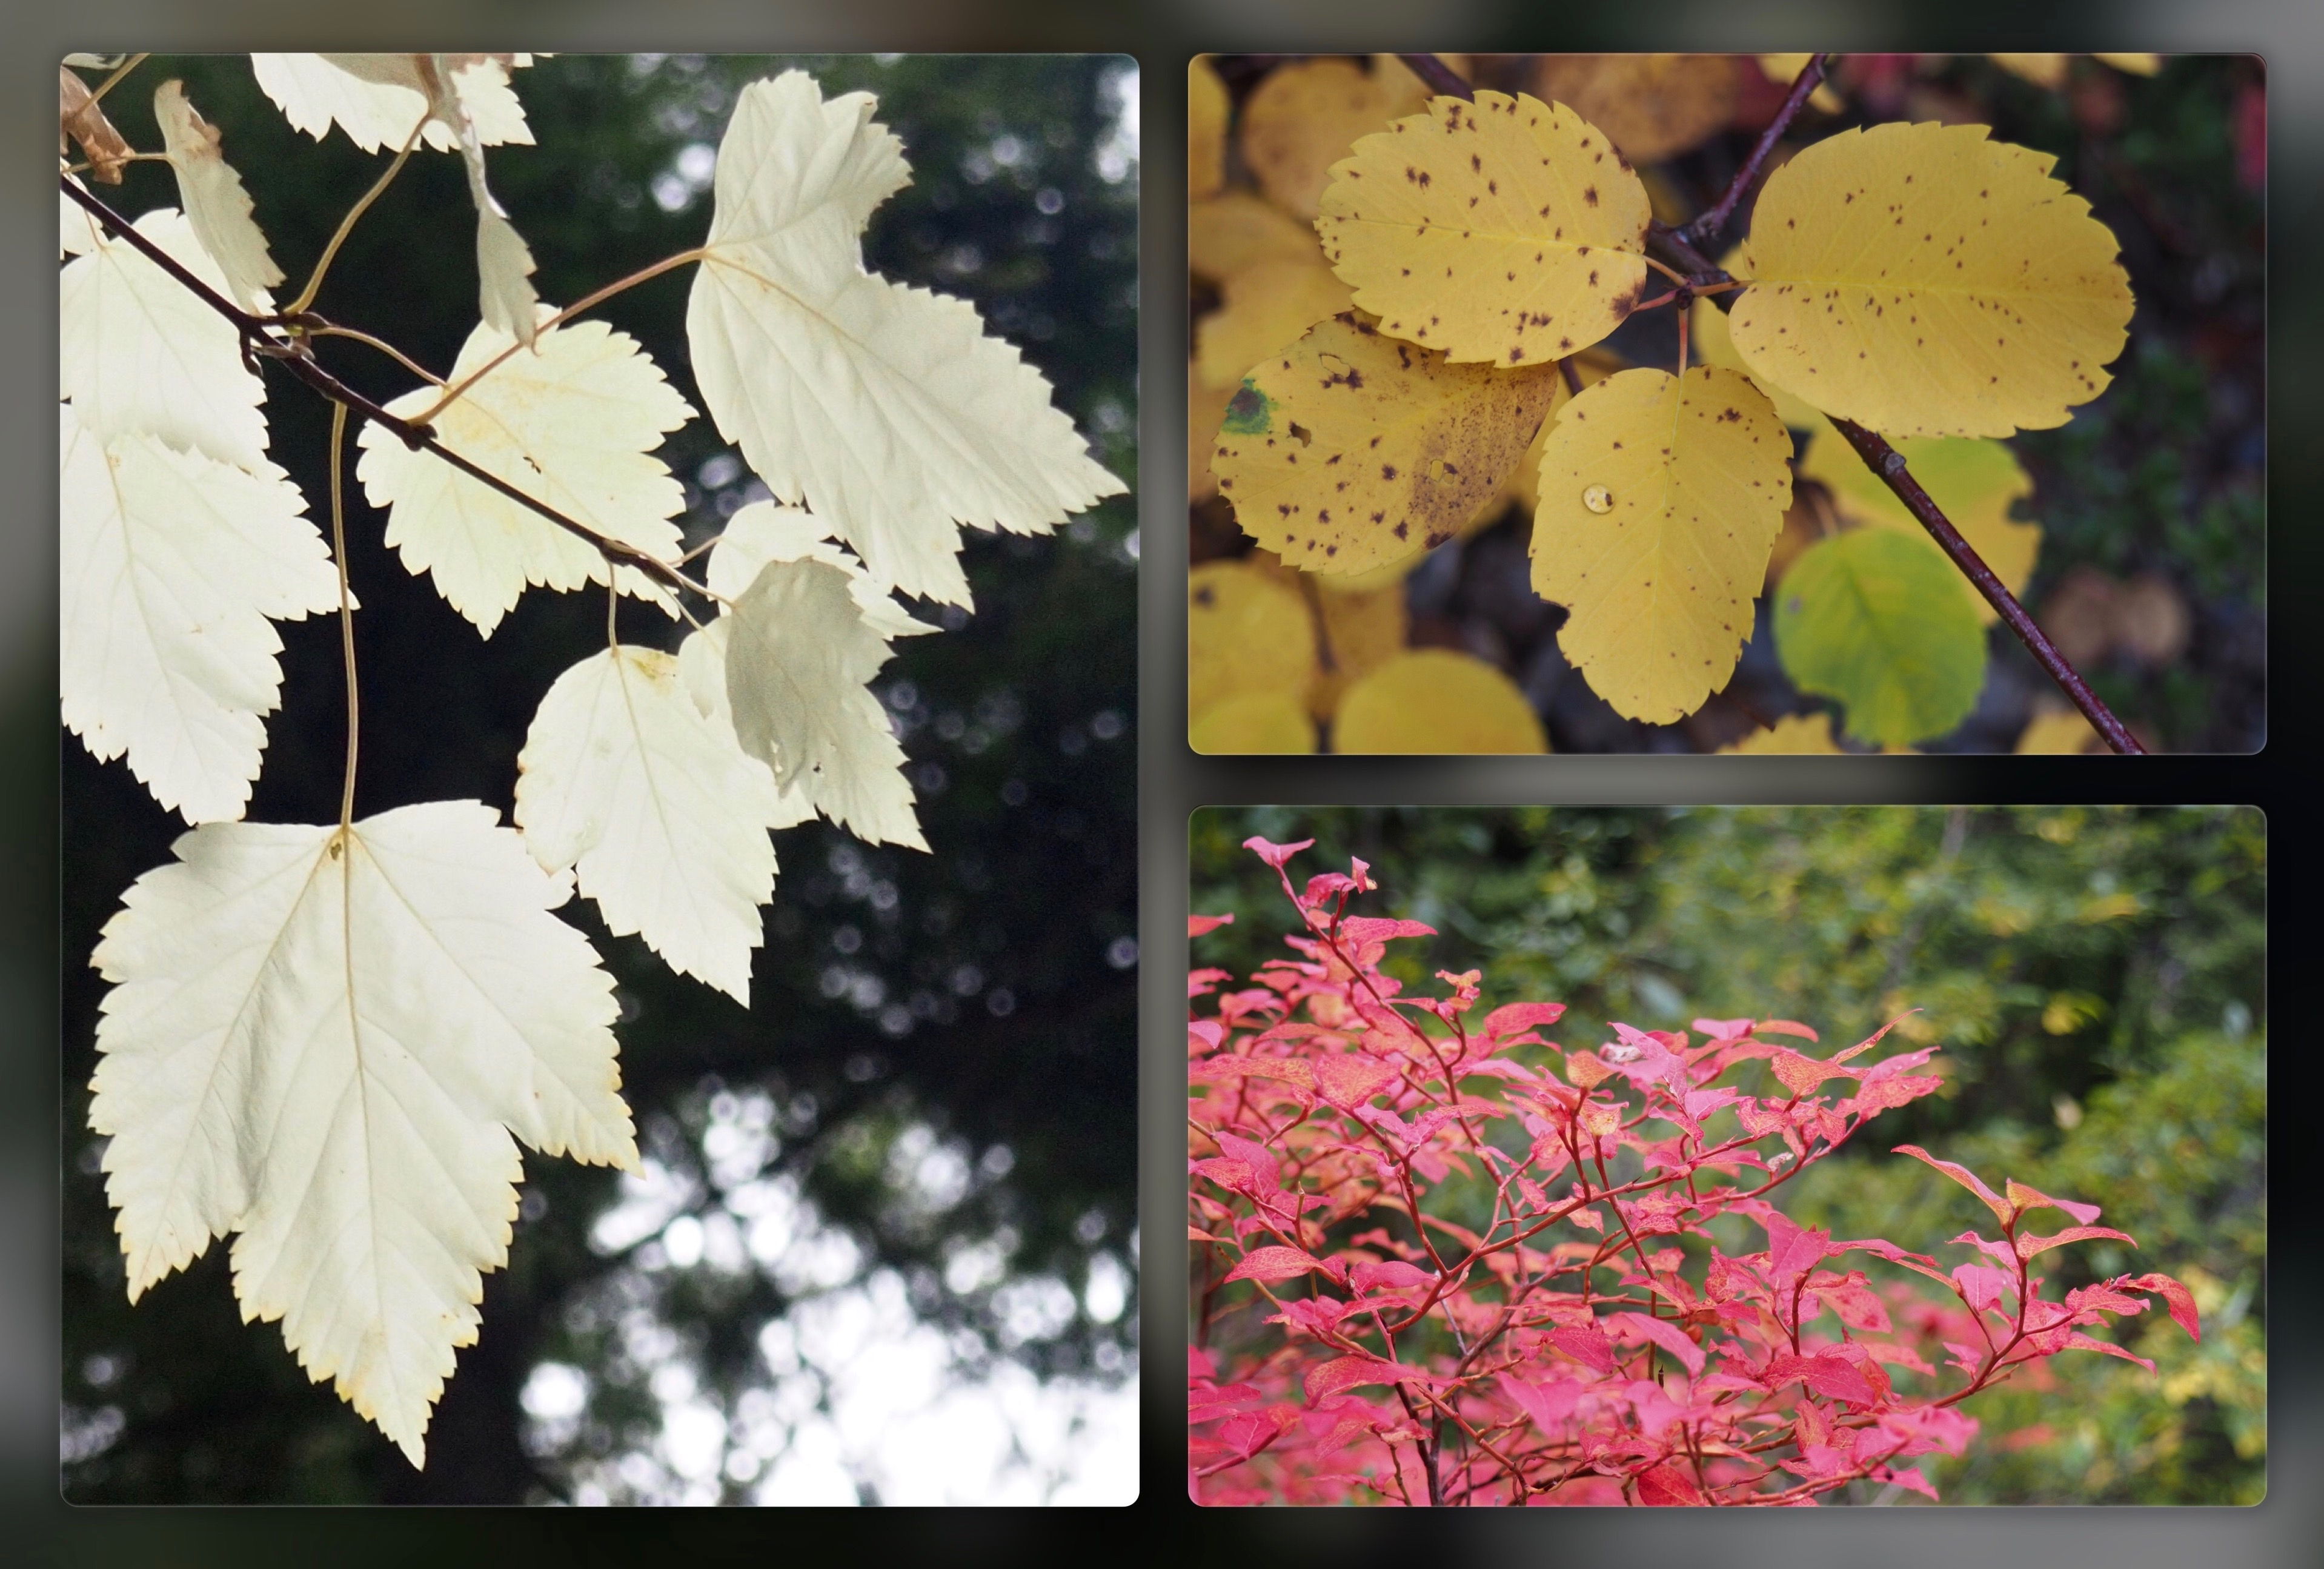 The trailside's autumn palette ranges from the pallid translucence of Rocky Mountain maples (Acer glabrum), to the speckled gold of western serviceberries (Amelanchier alnifolia), to the molten scarlet of blueberries (Vaccinium sp.). Cedar Falls Trail, September 21, 2016.